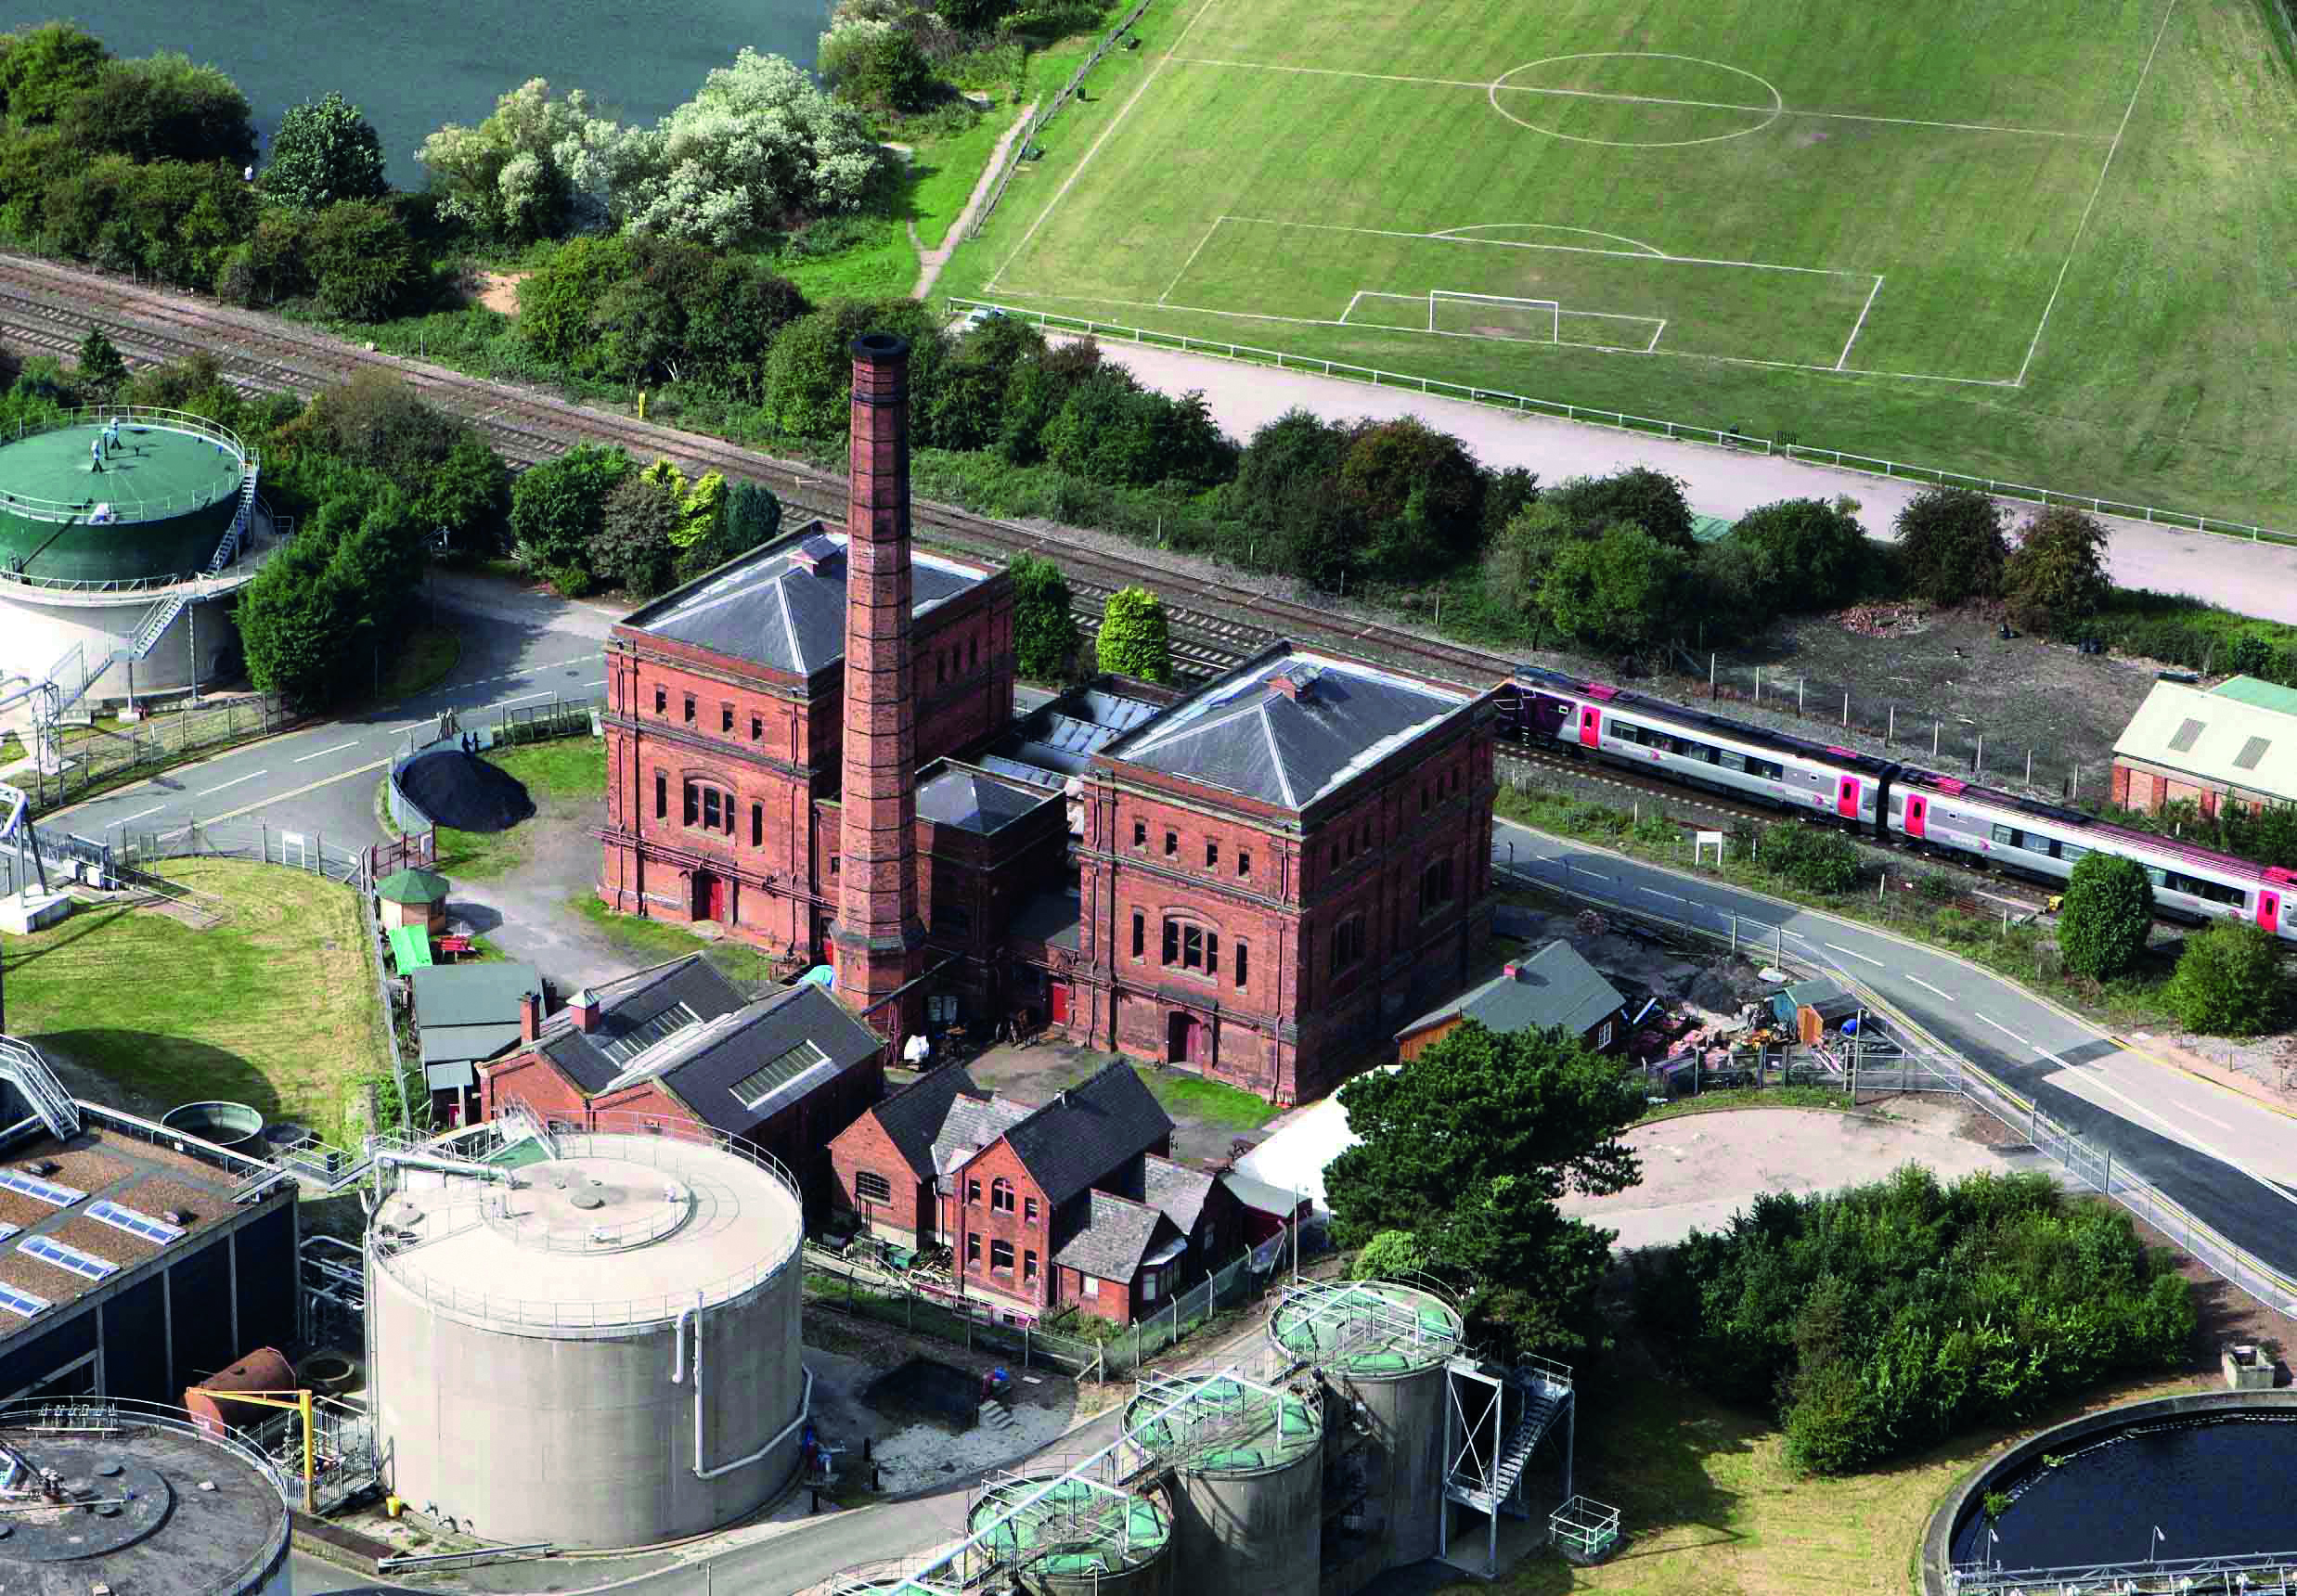 Claymills Pumping Station Burton-on-Trent EHA 58